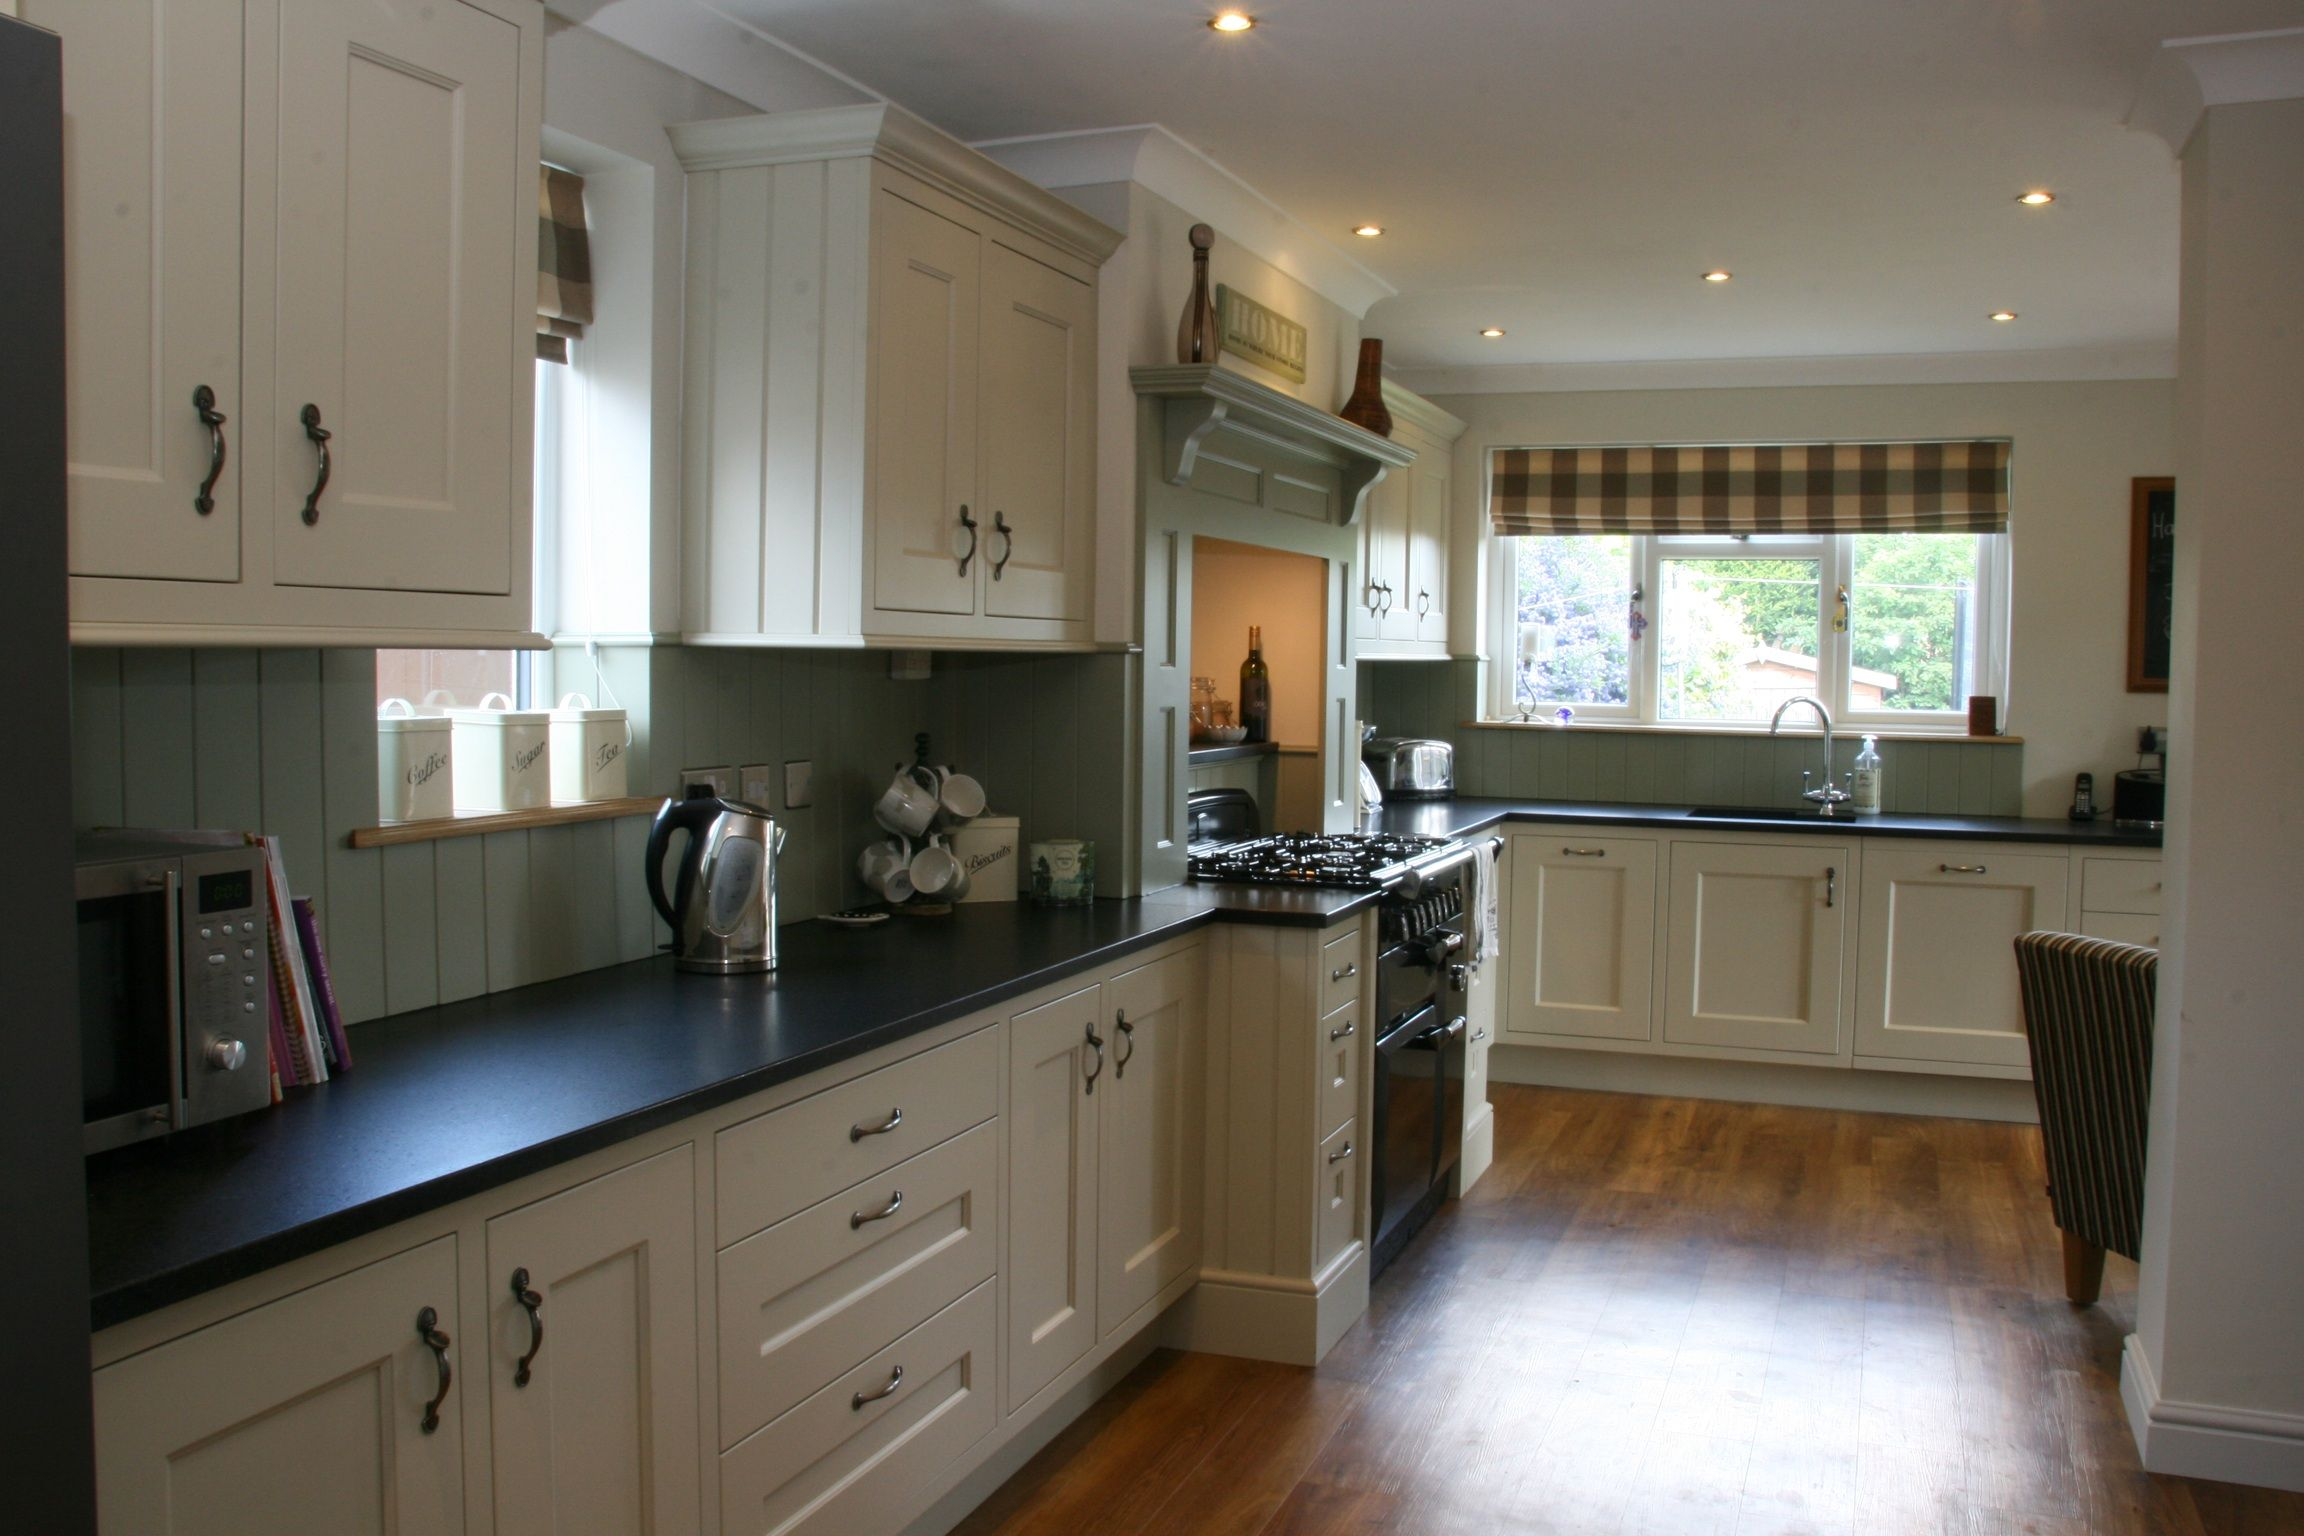 Another example of a painted shaker inframe kitchen with decorative over mantle